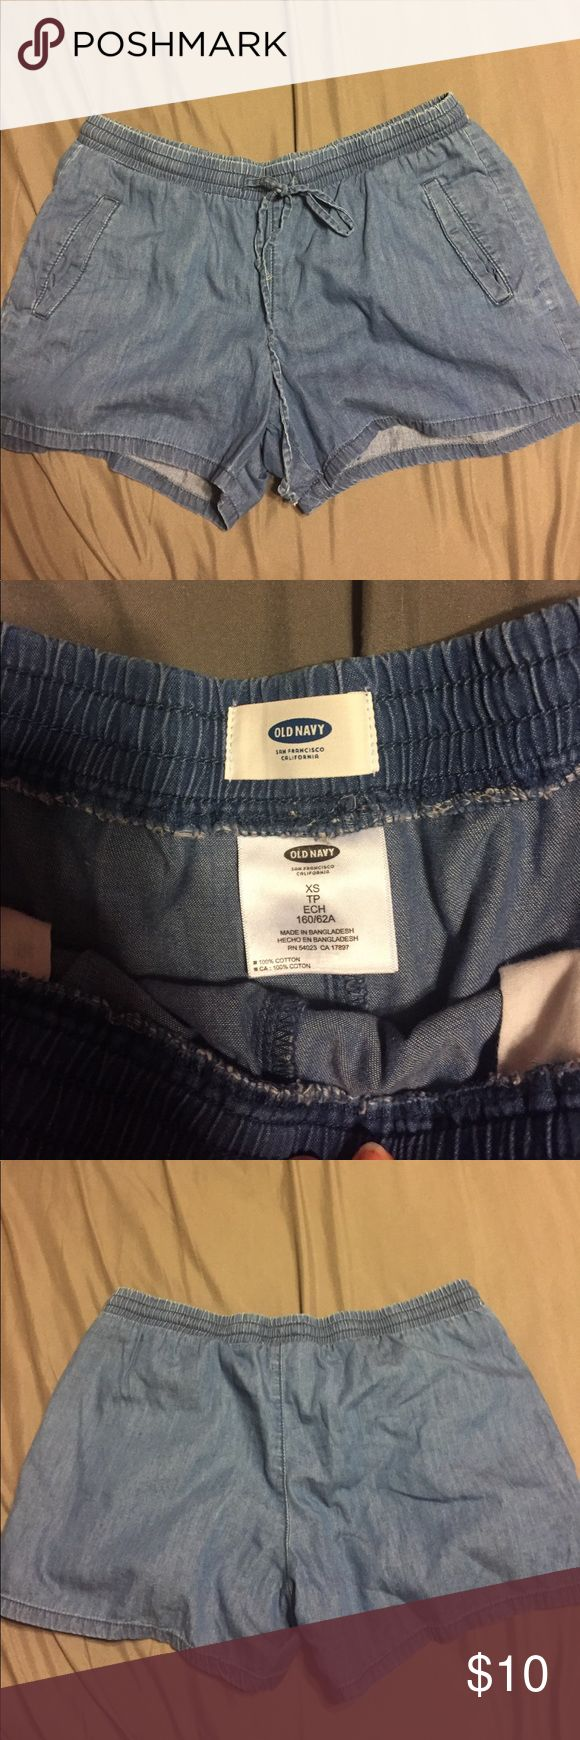 Old navy shorts Denim old navy shorts with front pockets. Worn only once or twice! Like new. No stains or rips or tears. Smoke free home Old Navy Shorts